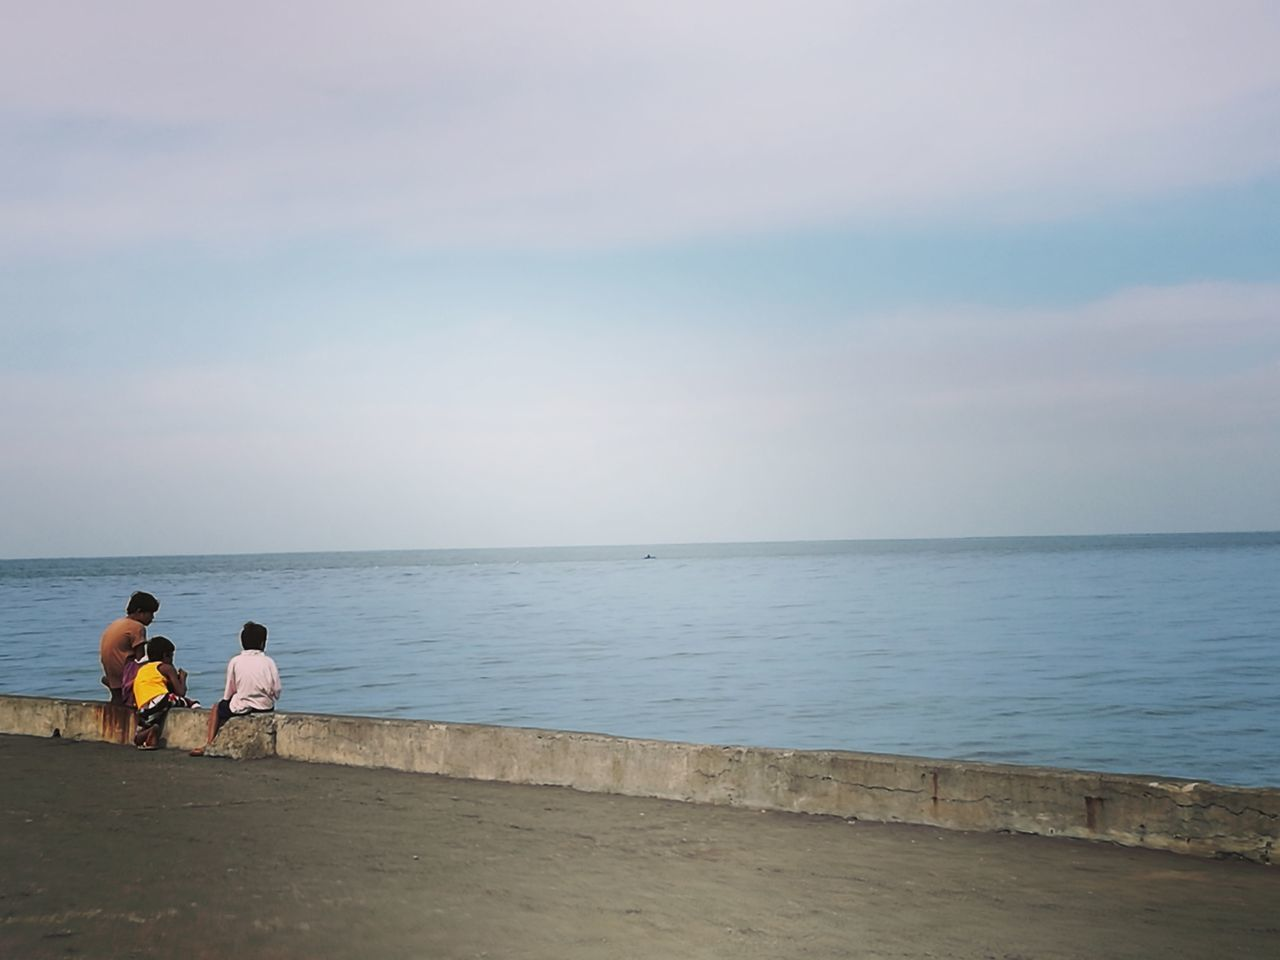 sea, horizon over water, water, real people, rear view, nature, scenics, beauty in nature, togetherness, two people, tranquil scene, leisure activity, beach, sky, outdoors, men, tranquility, sitting, lifestyles, vacations, women, day, full length, fishing pole, people